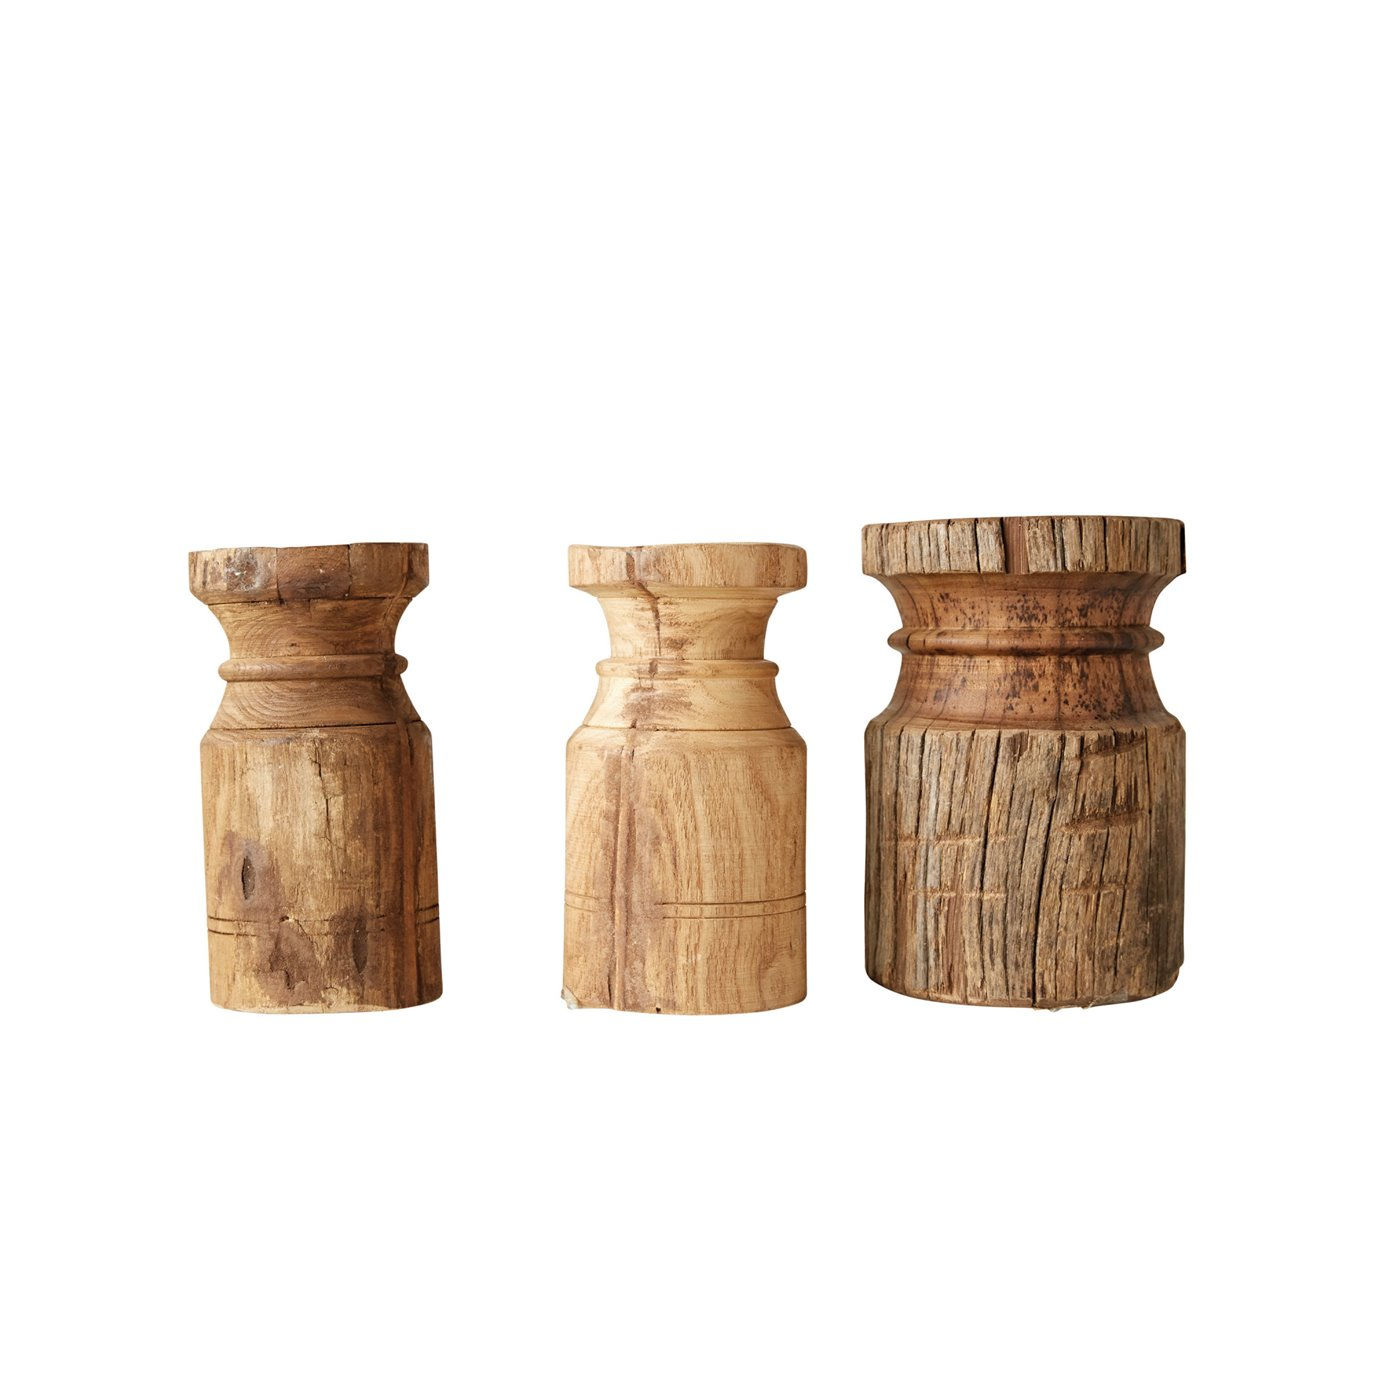 Found Carved Wood Pillar Candleholder (each one will vary)